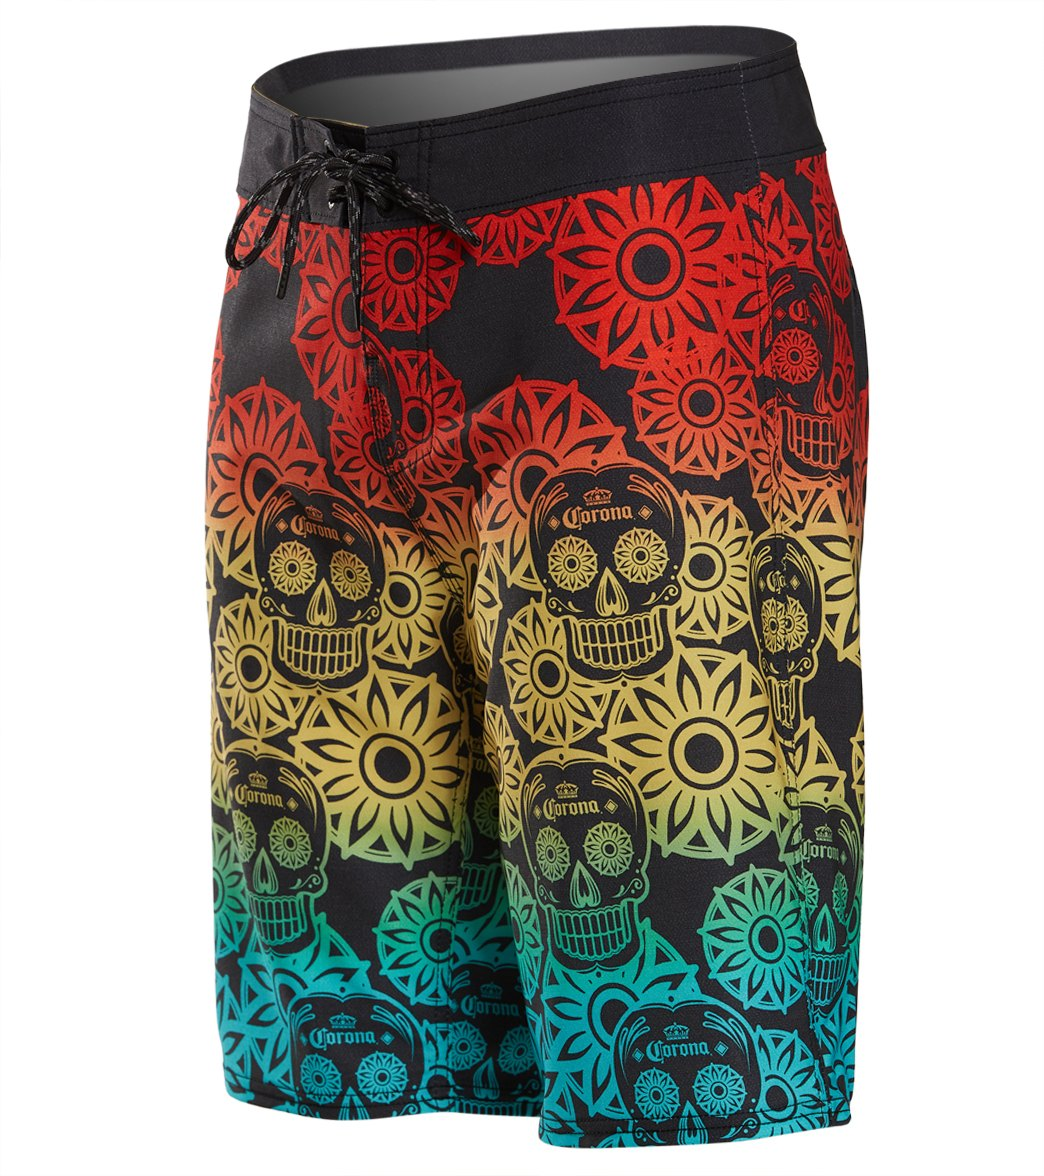 0ad2fe3770 Reef Men's X Corona Board Short at SwimOutlet.com - Free Shipping